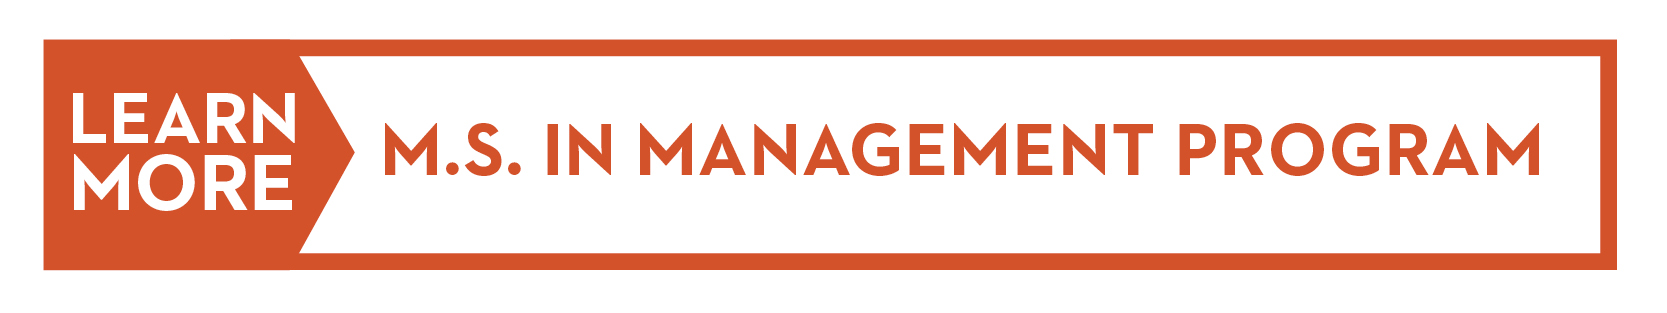 Learn More: M.S. in Management Program